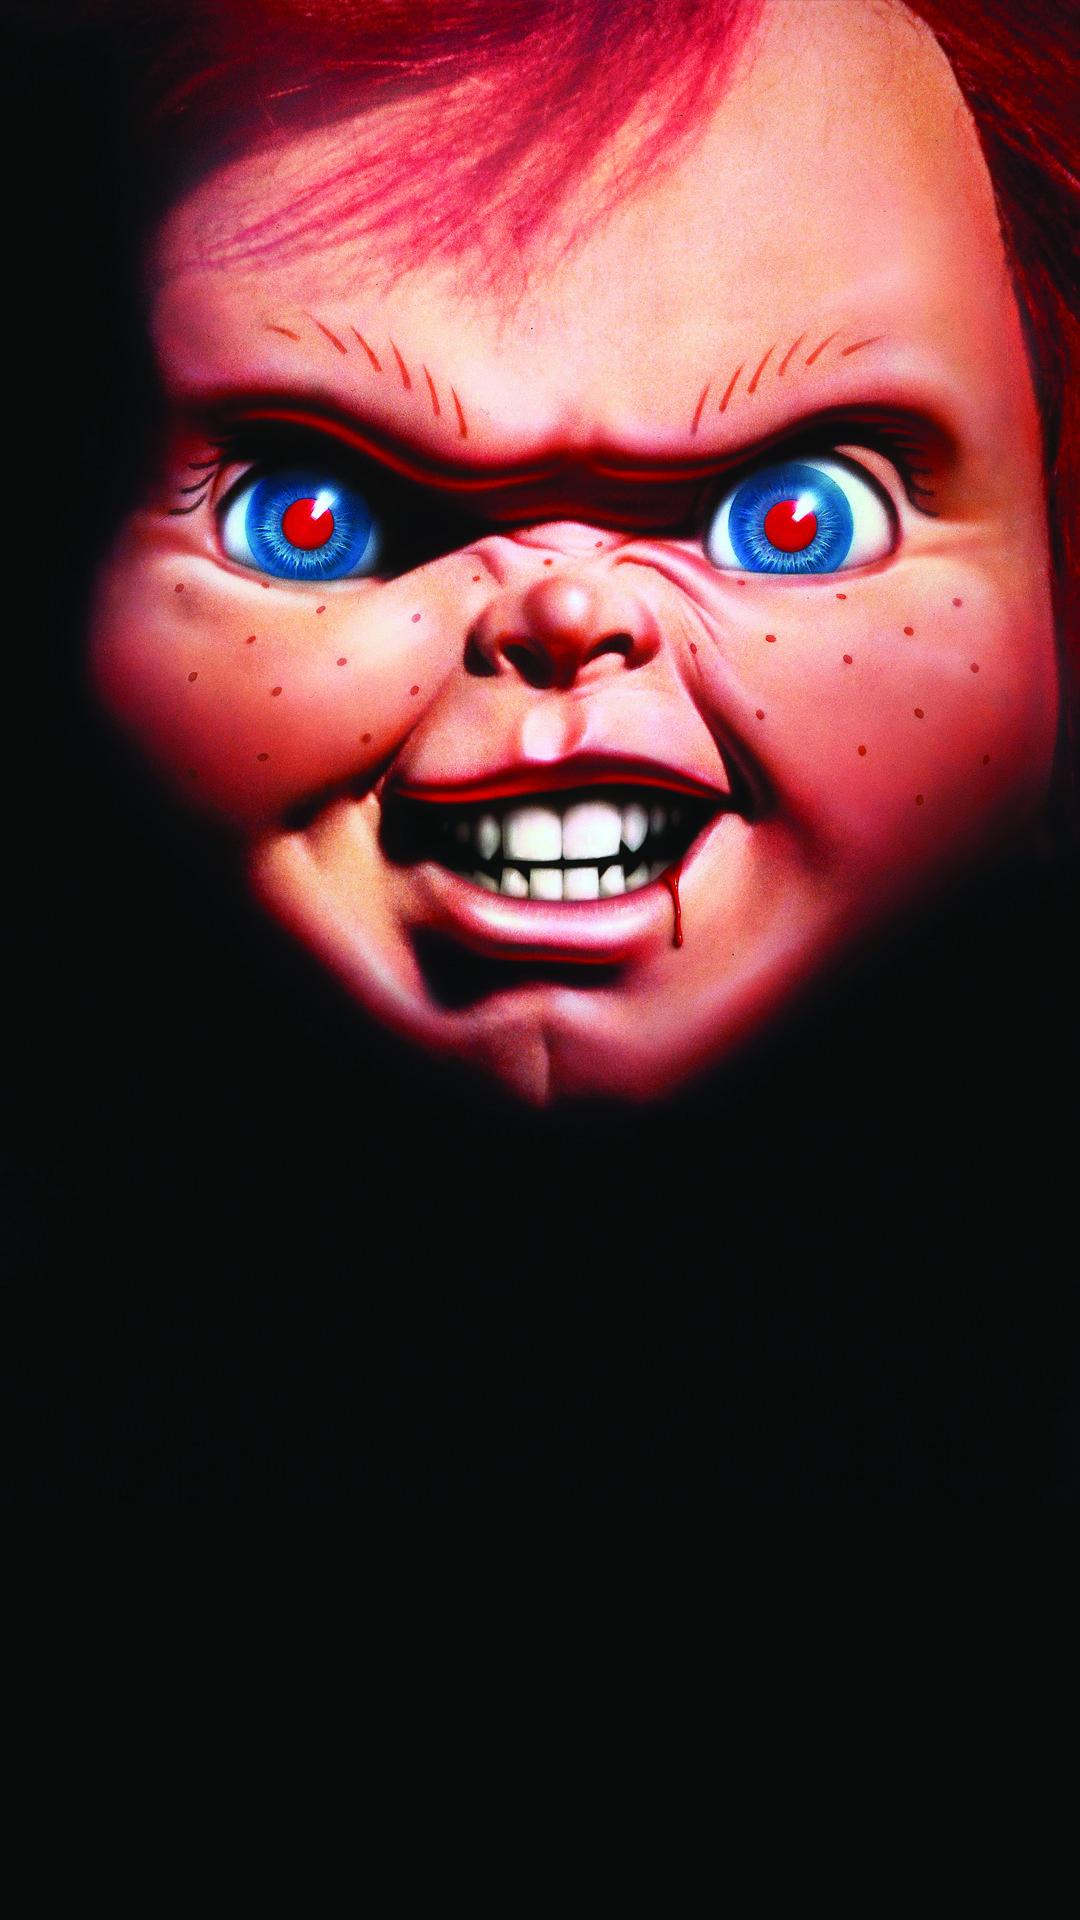 Scary Image Scary Dolls Scary Images Scary Doll Movies